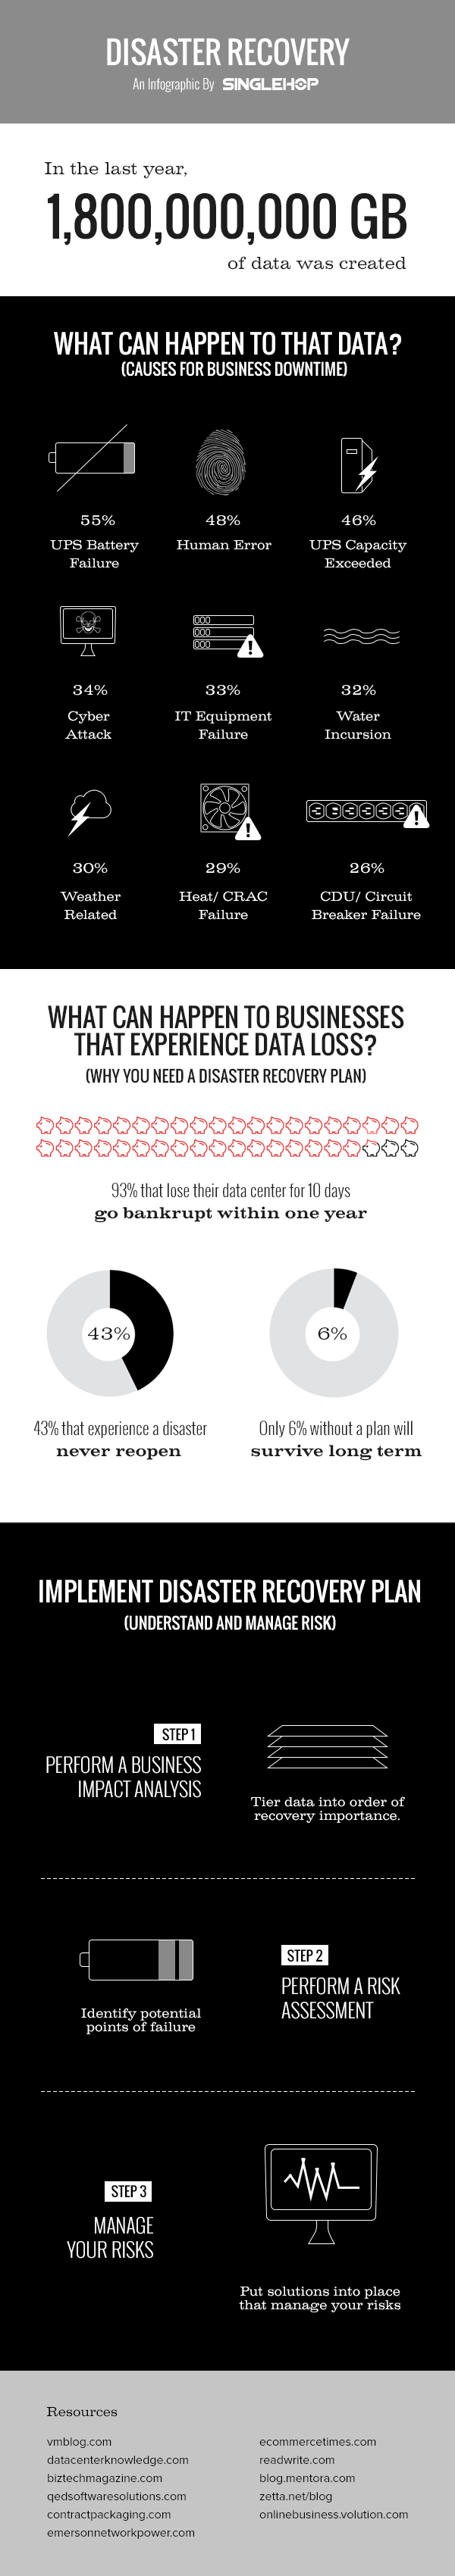 disaster-recovery-infographic-zombieslounge